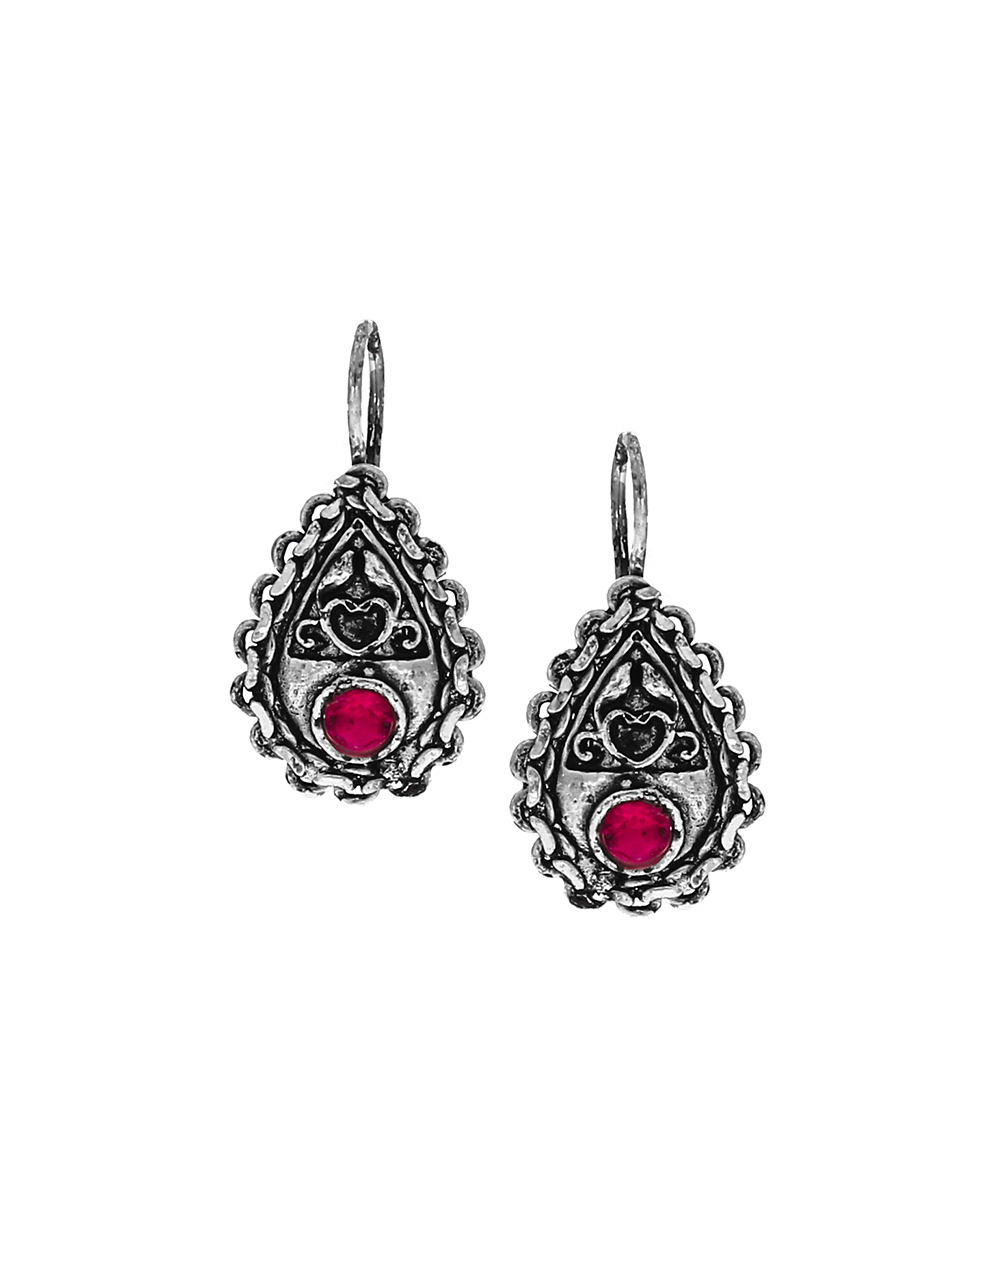 Adorable Pink Colour Silver Oxidized Bugadi Earrings for Women.